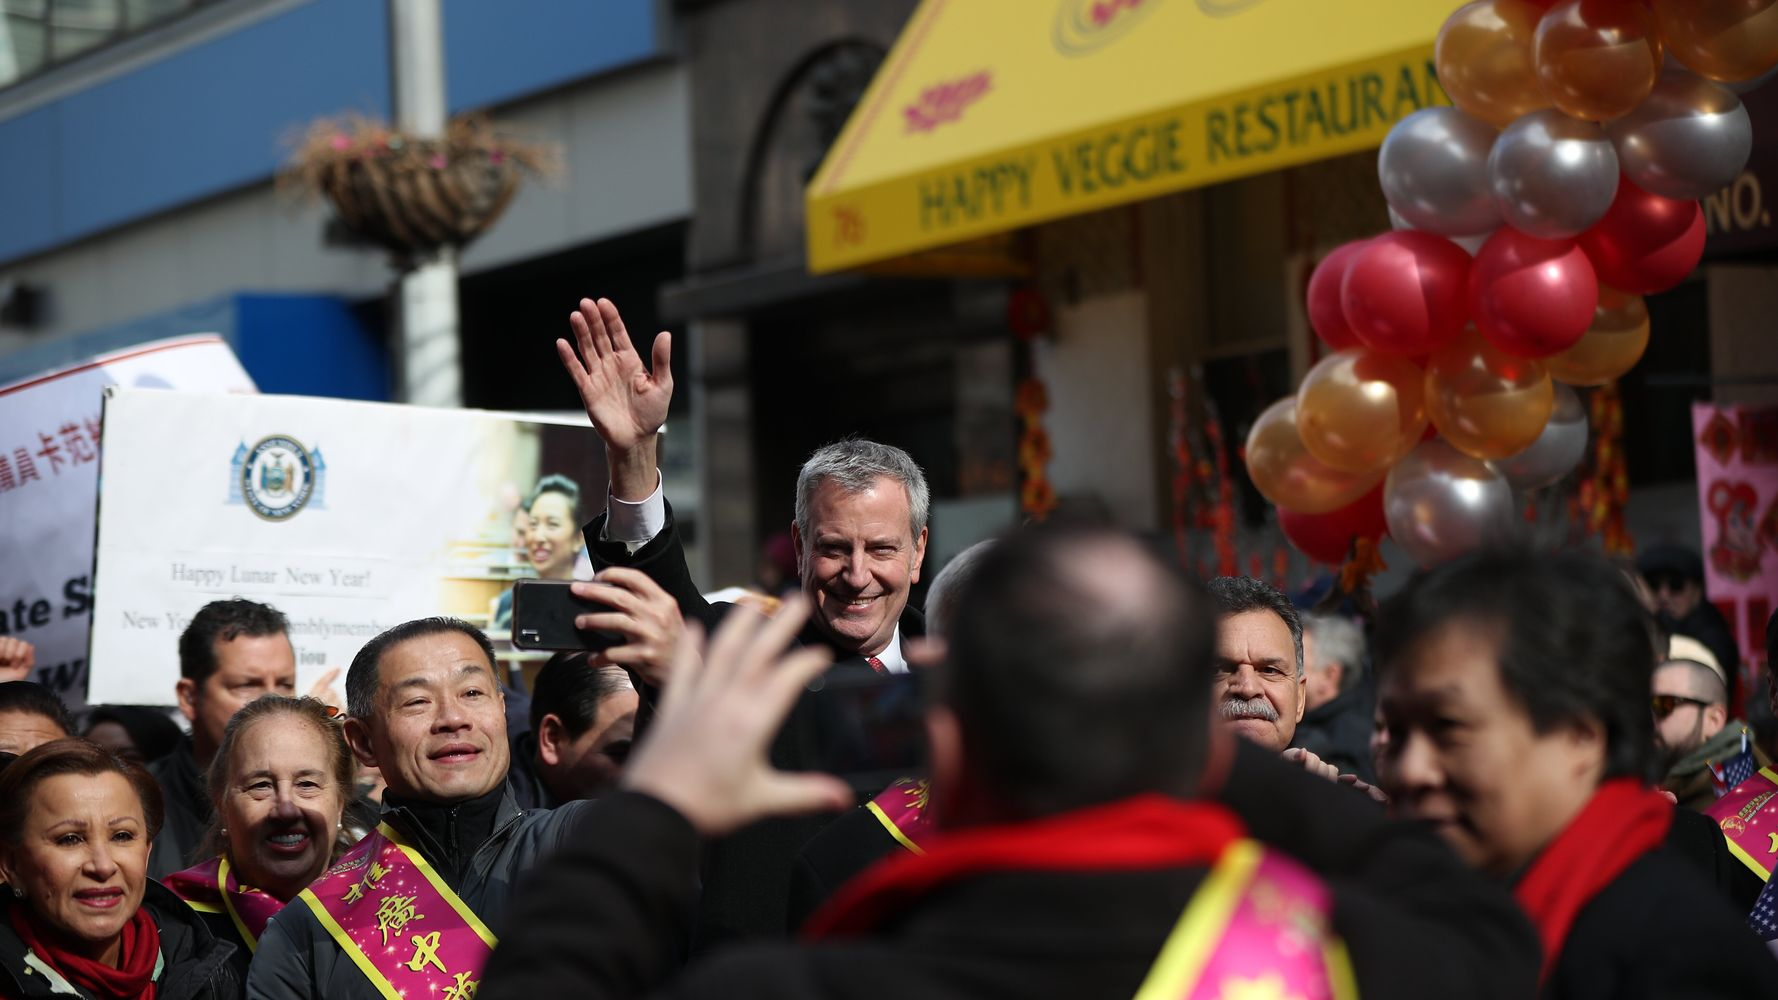 New York Mayor Urges Support For Chinatowns Amid Racist Coronavirus Fears